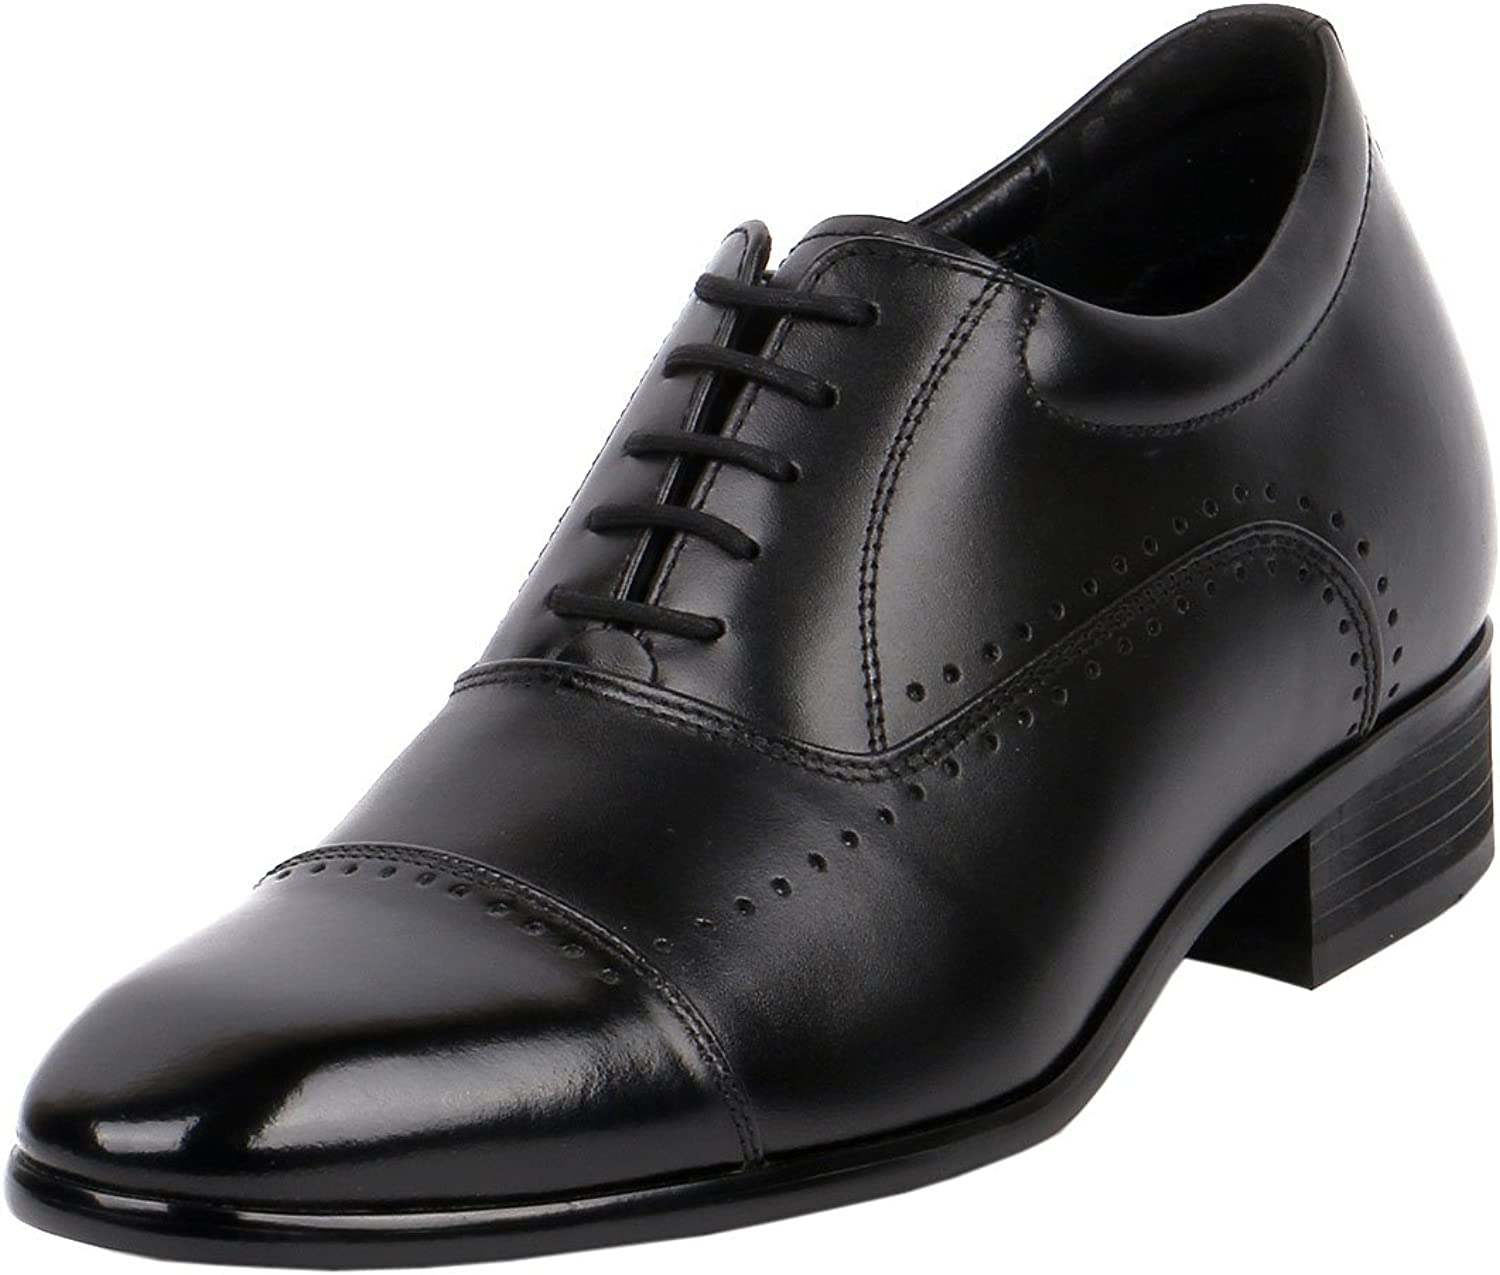 Height Increasing shoes Wide Feet shoes For Dress, Work and Formal, 2.8  Tall